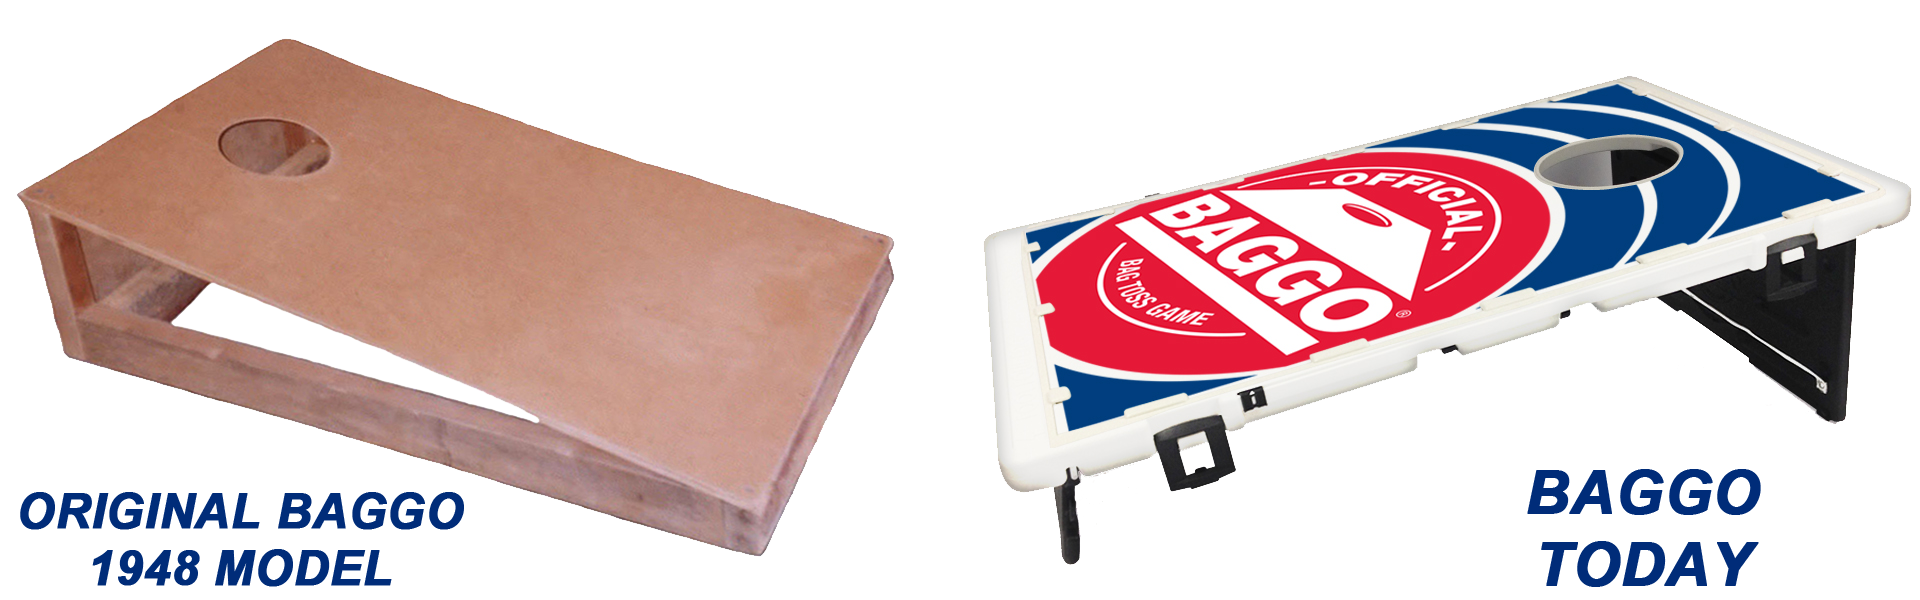 Original Baggo Game (1948 Model) vs. Baggo Today